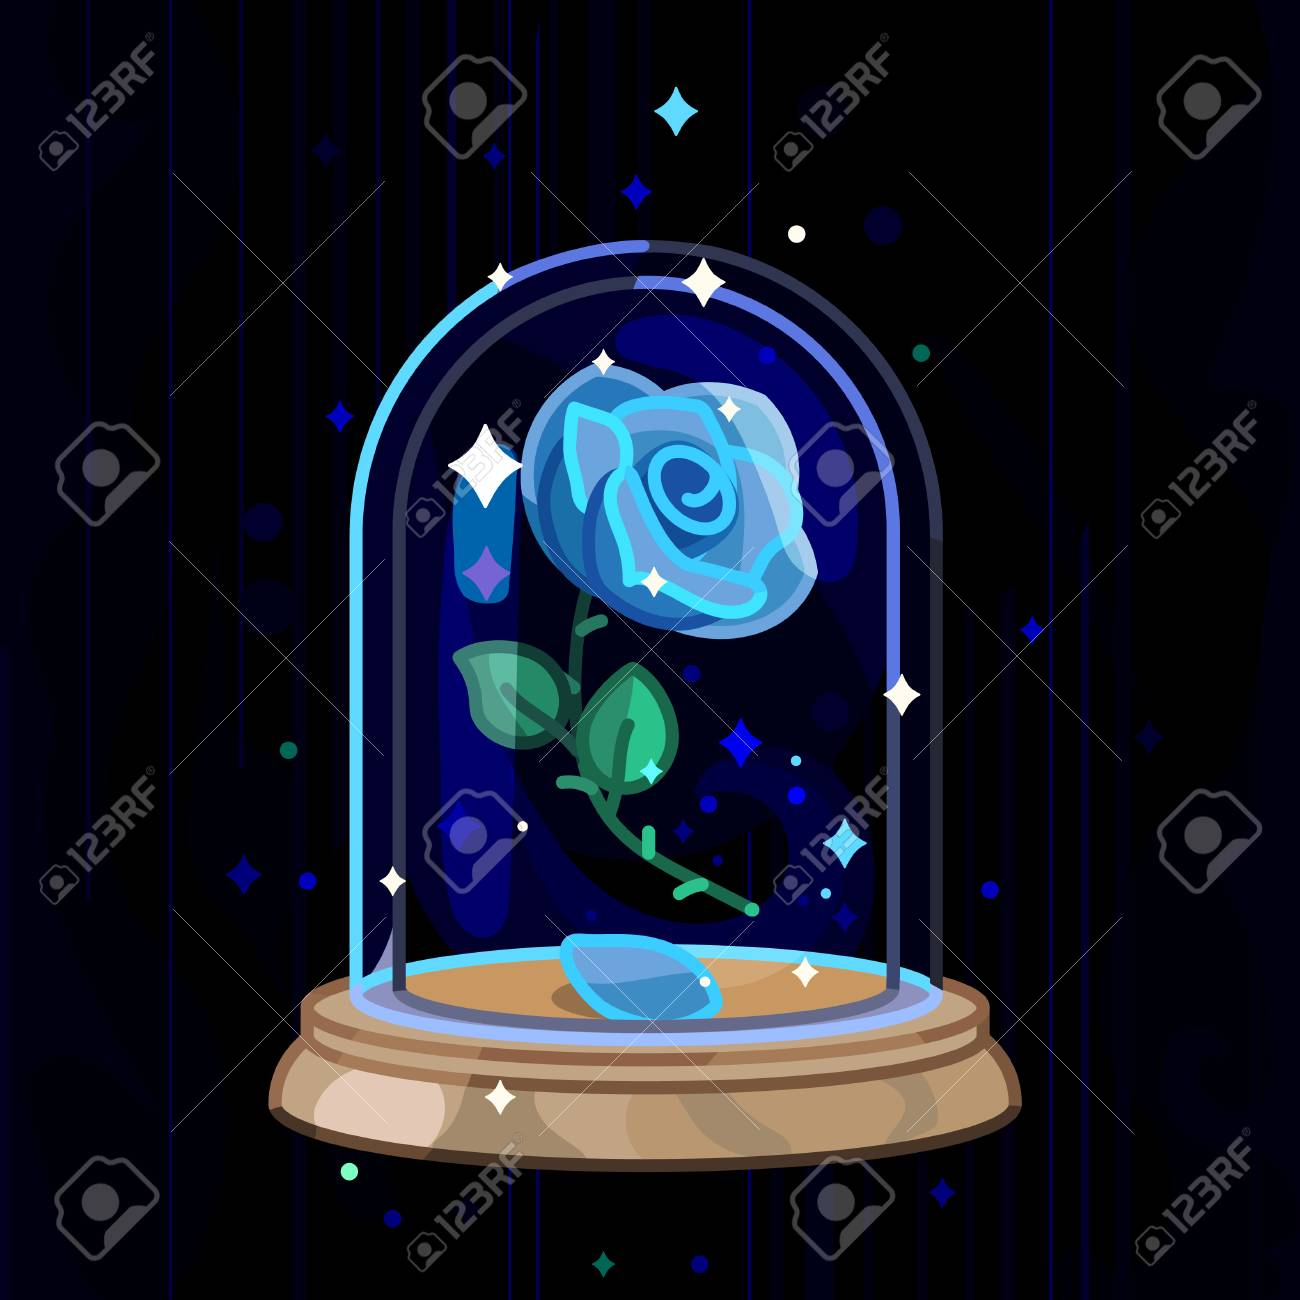 Vector Beauty And Beast Blue Rose Glass Dome Royalty Free Cliparts